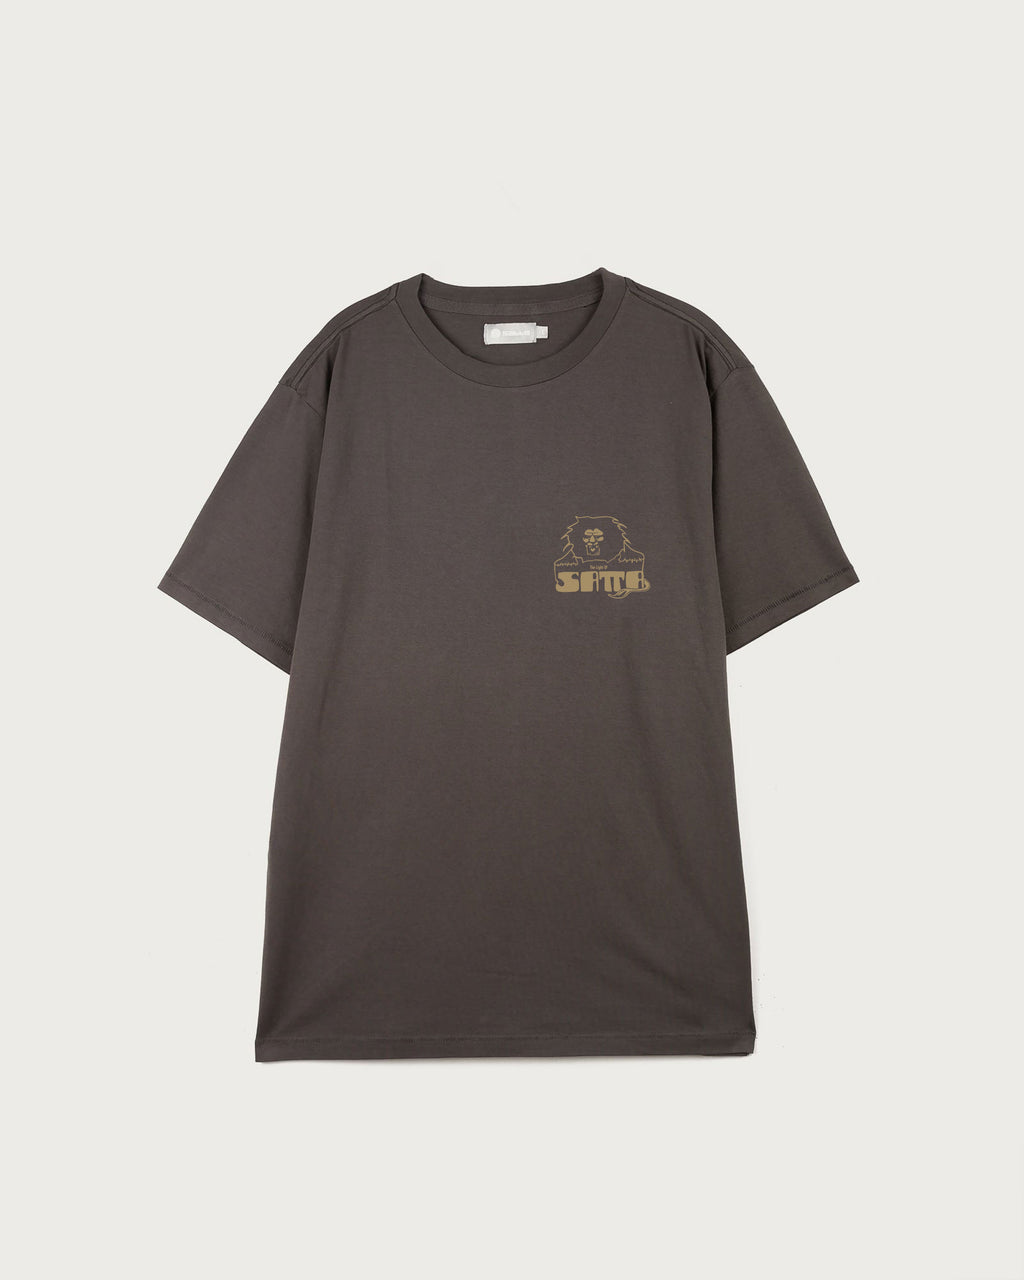 Light Of Satta Tee - Washed Black - SATTA